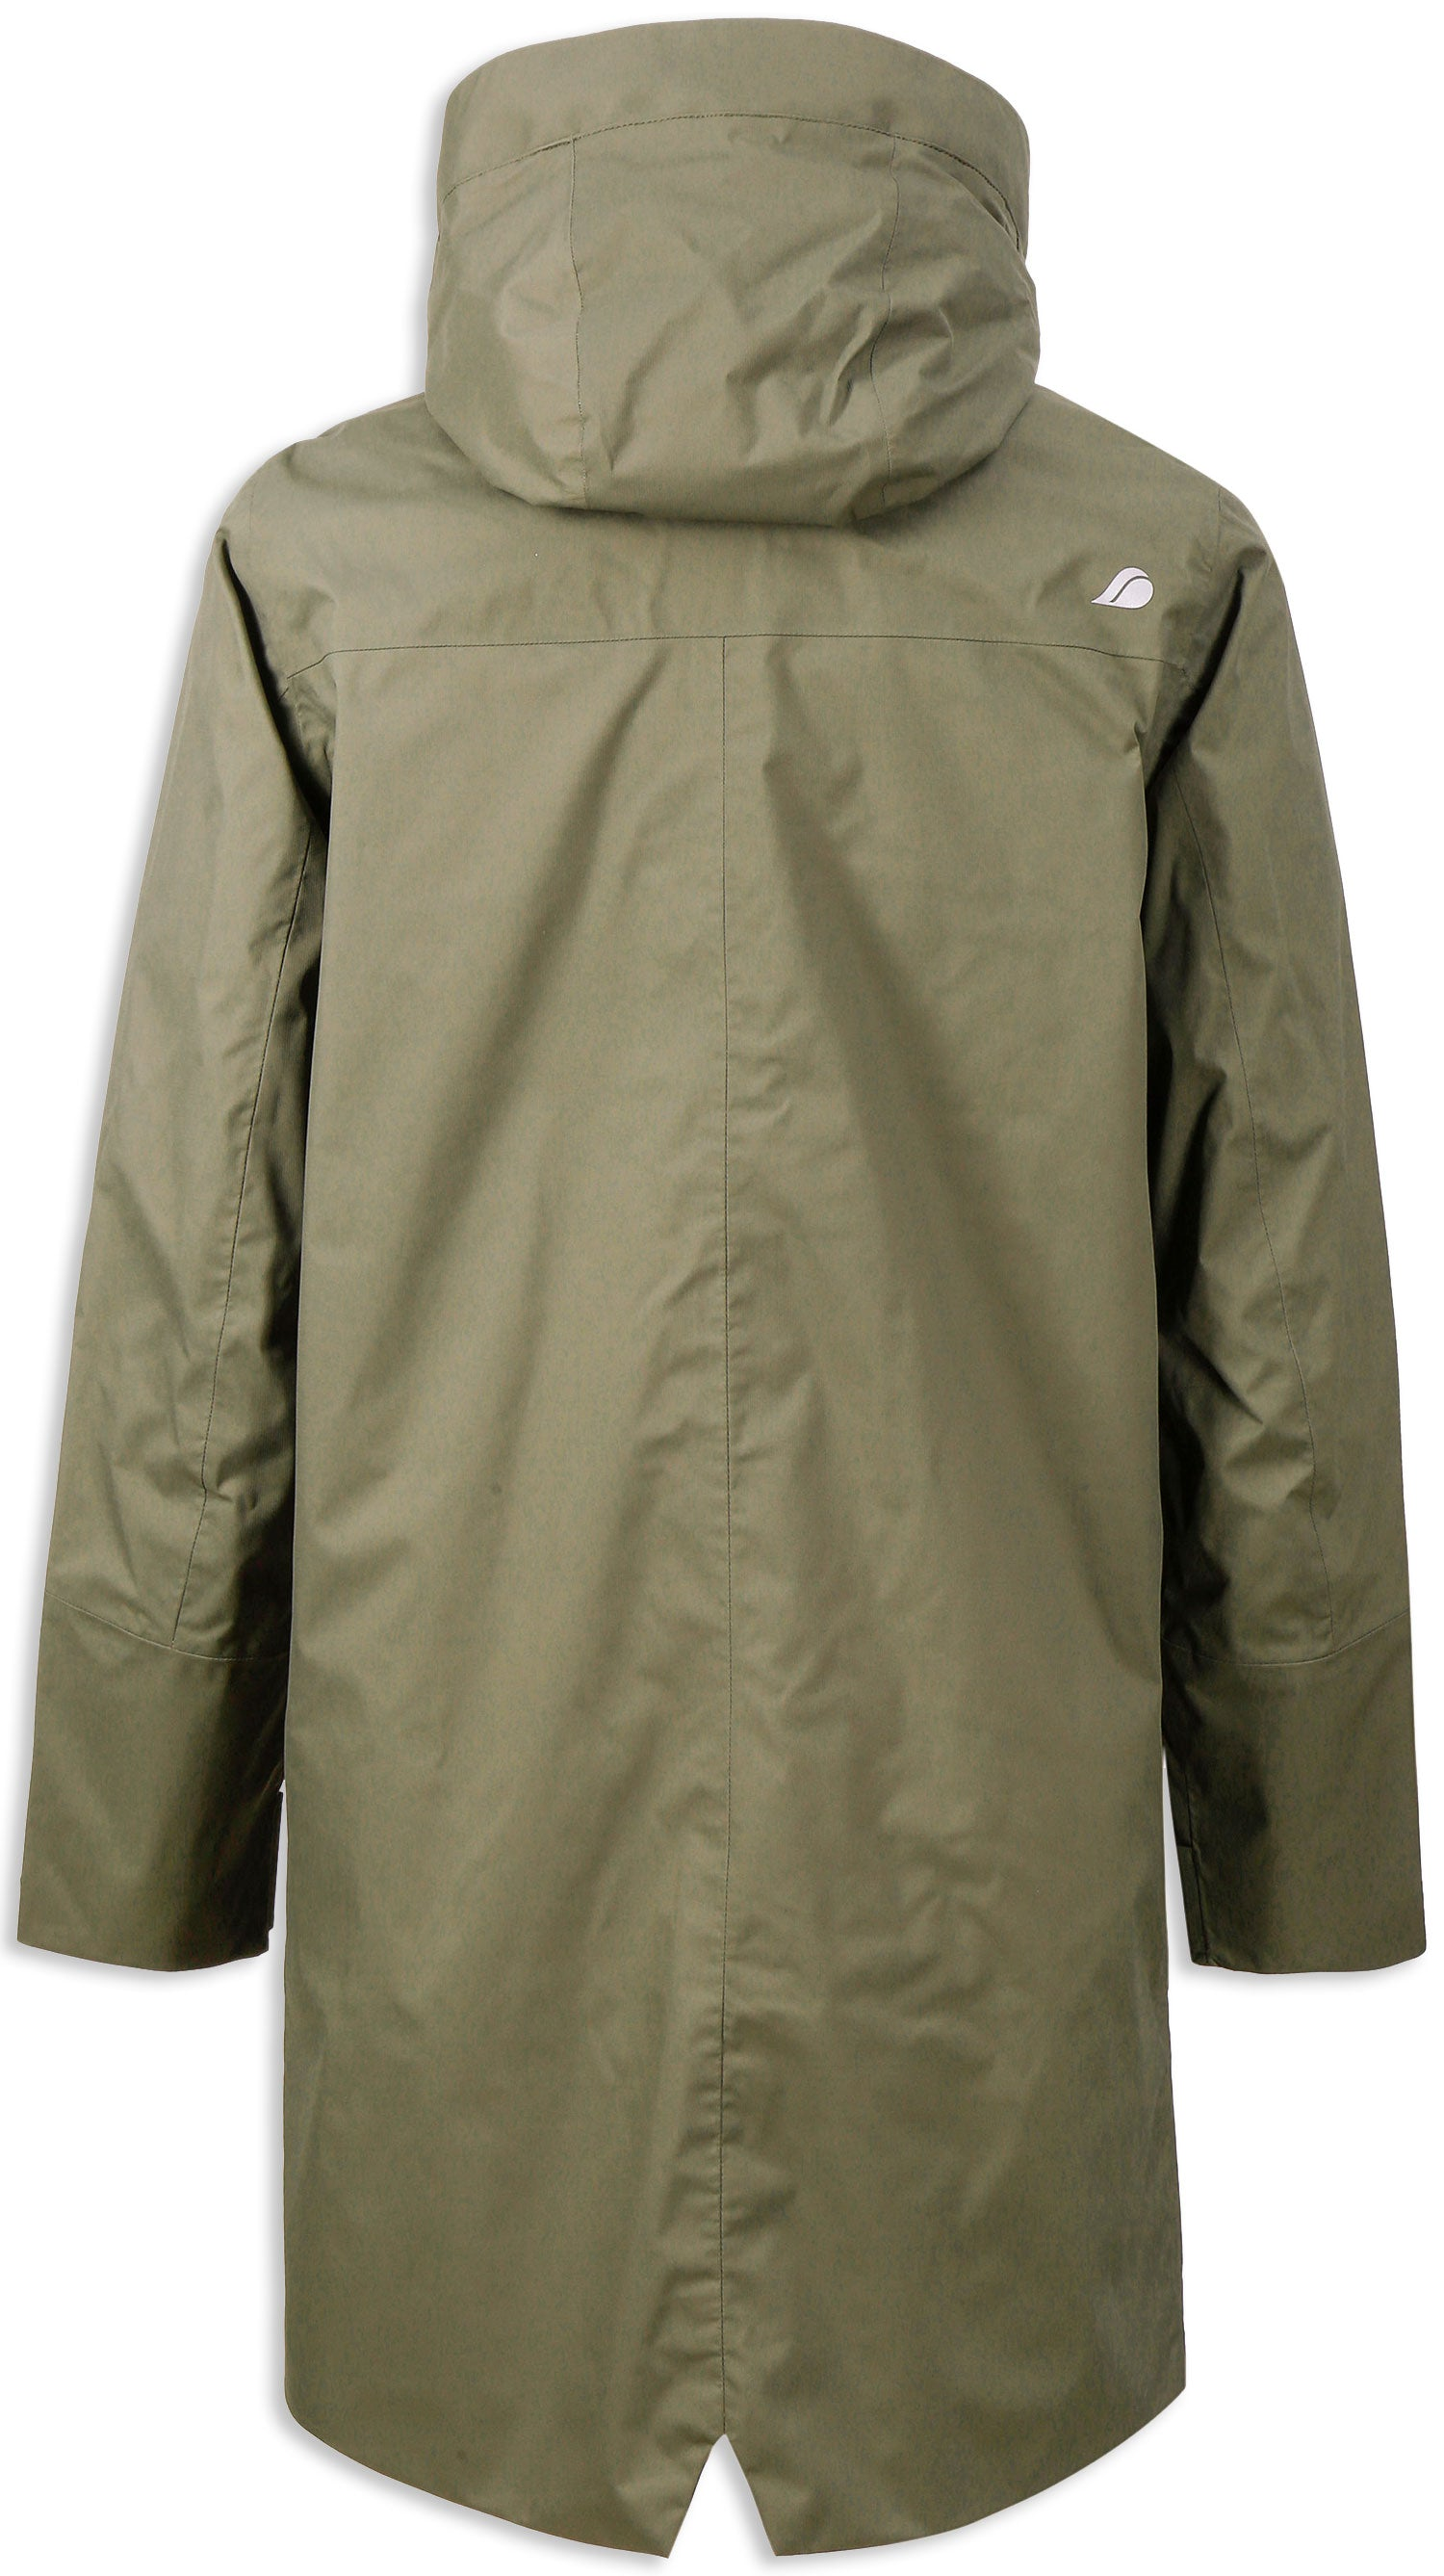 Reverse view Fog Green Didriksons Arnold 2 Waterproof Parka